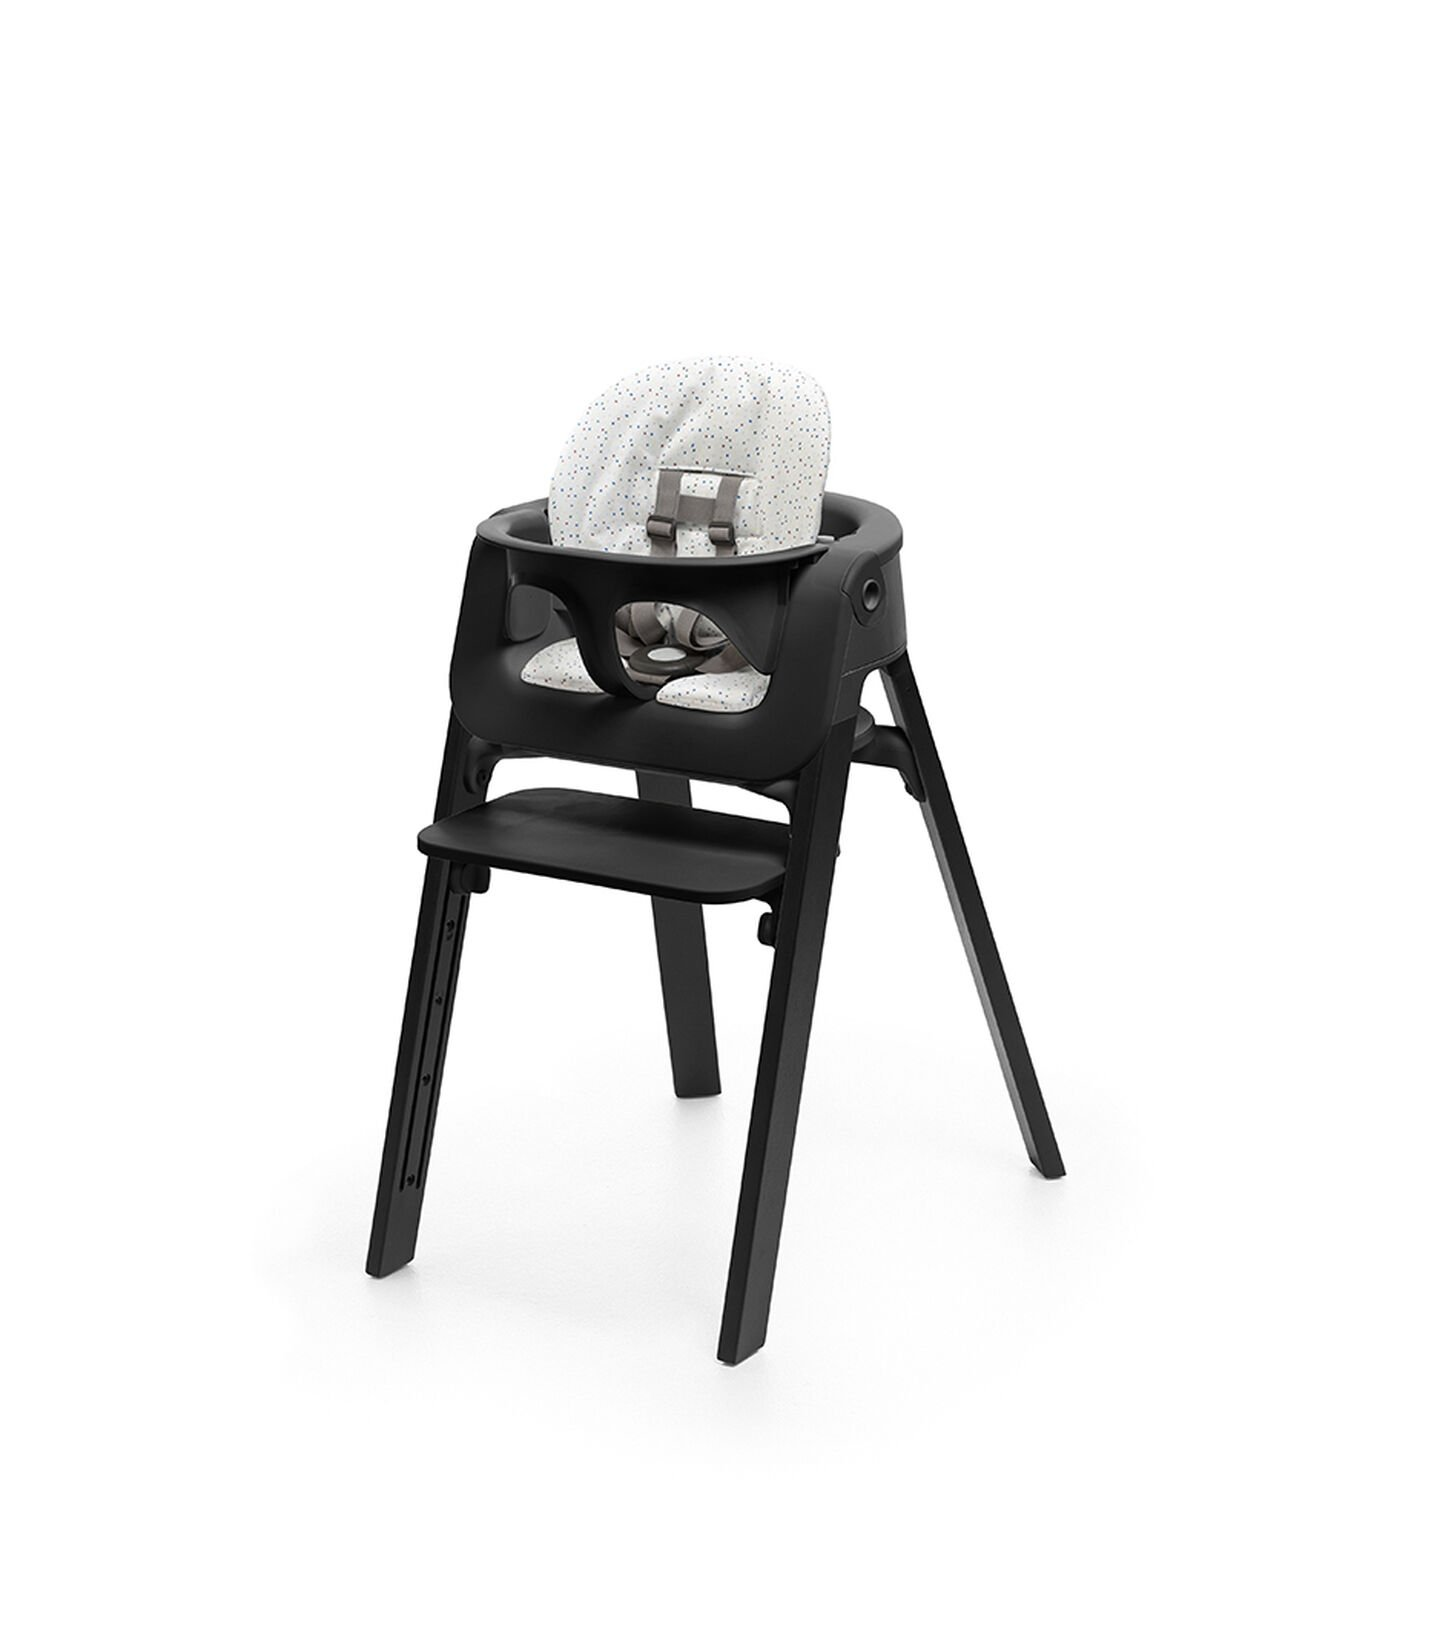 Stokke® Steps™ Chair Oak Black, with Baby Set Black and Cushion Soft Sprinkle.